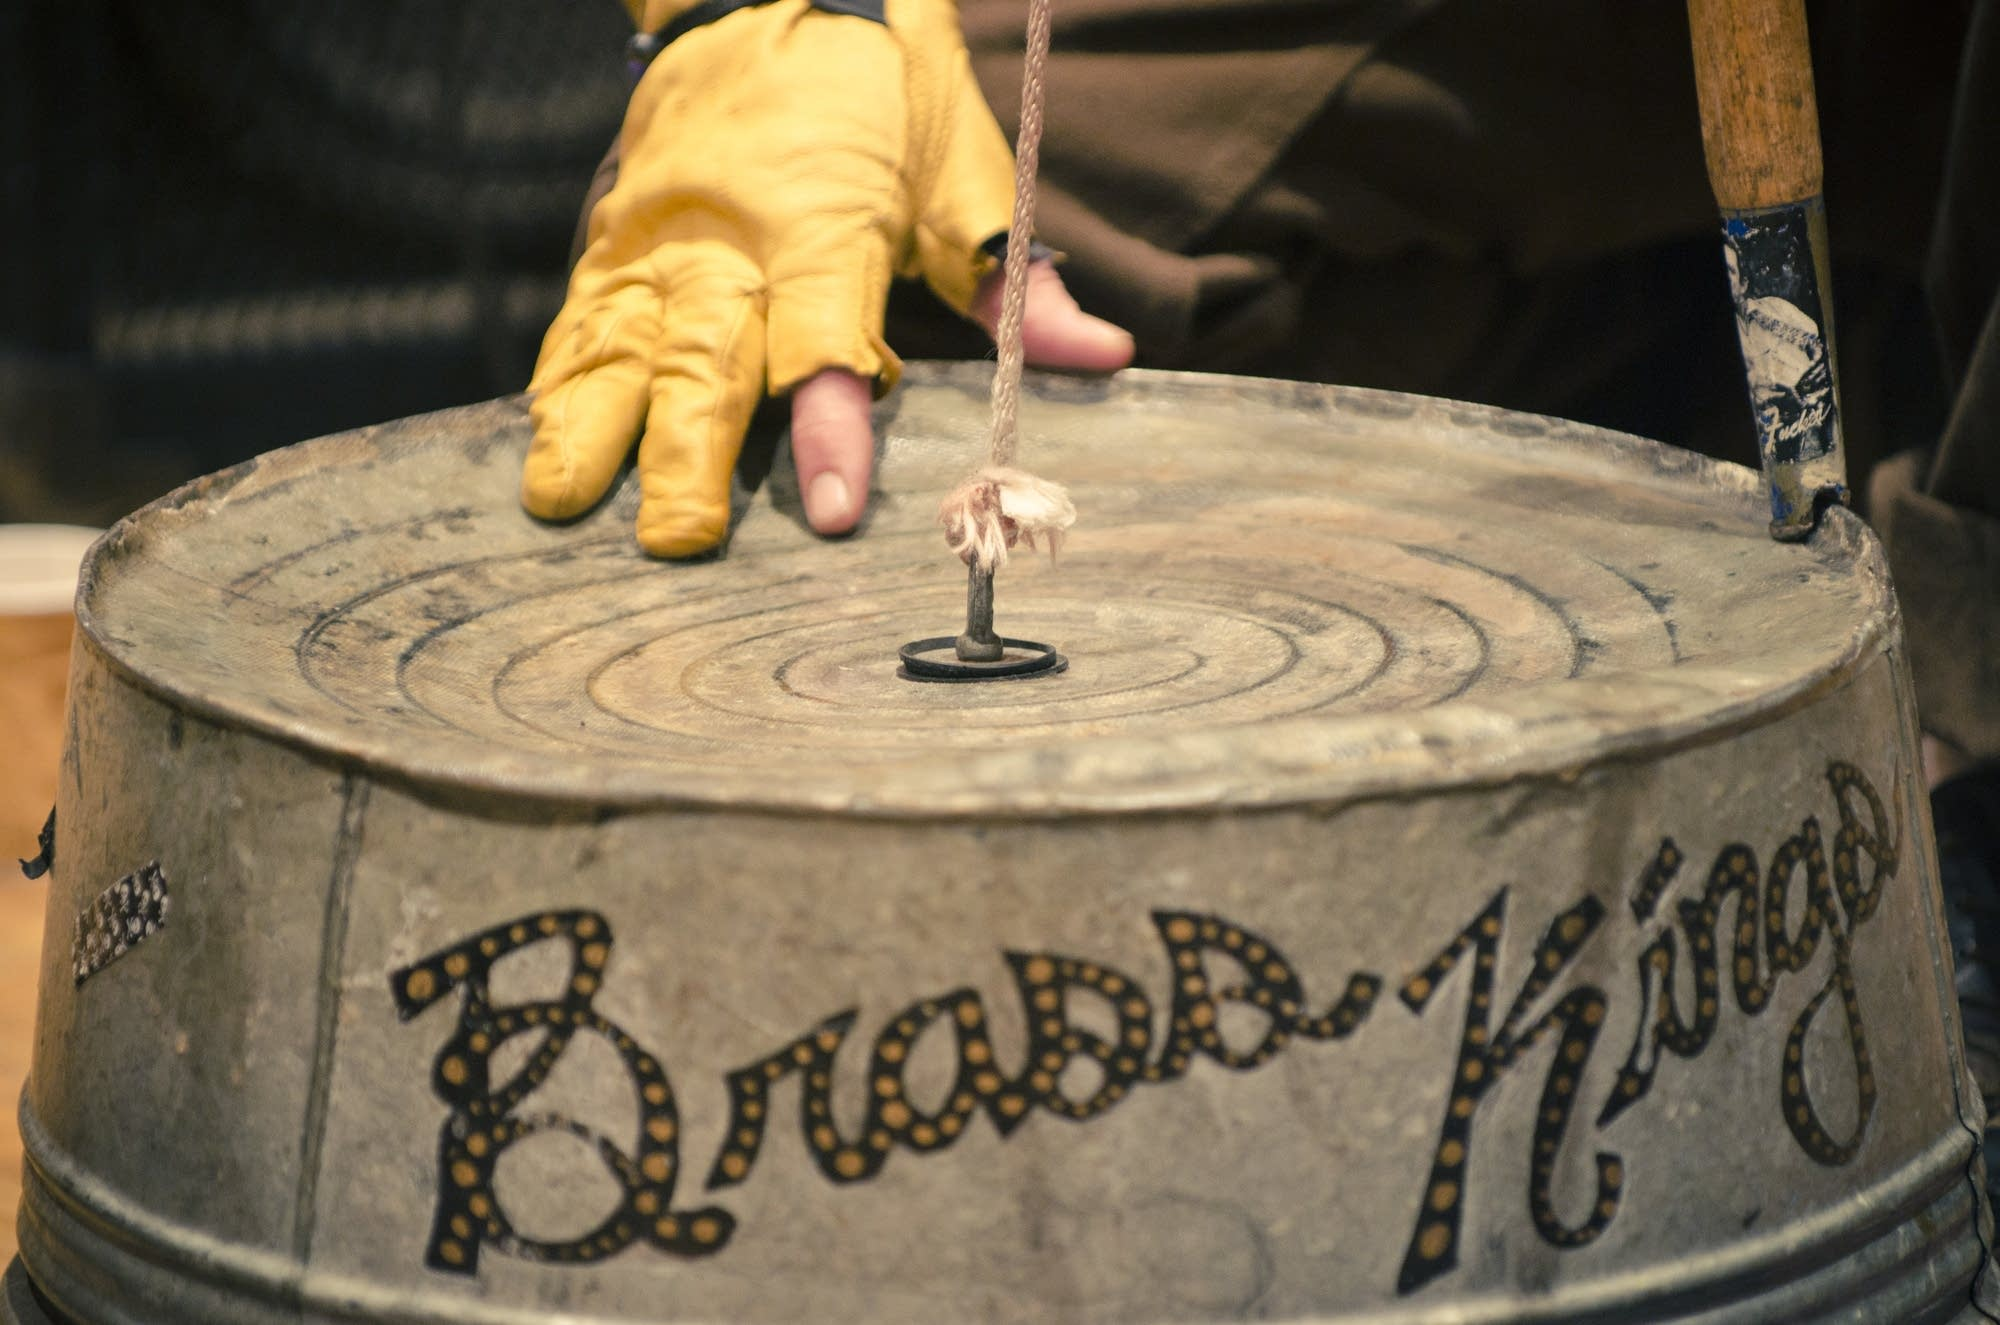 The Brass Kings' washtub bass